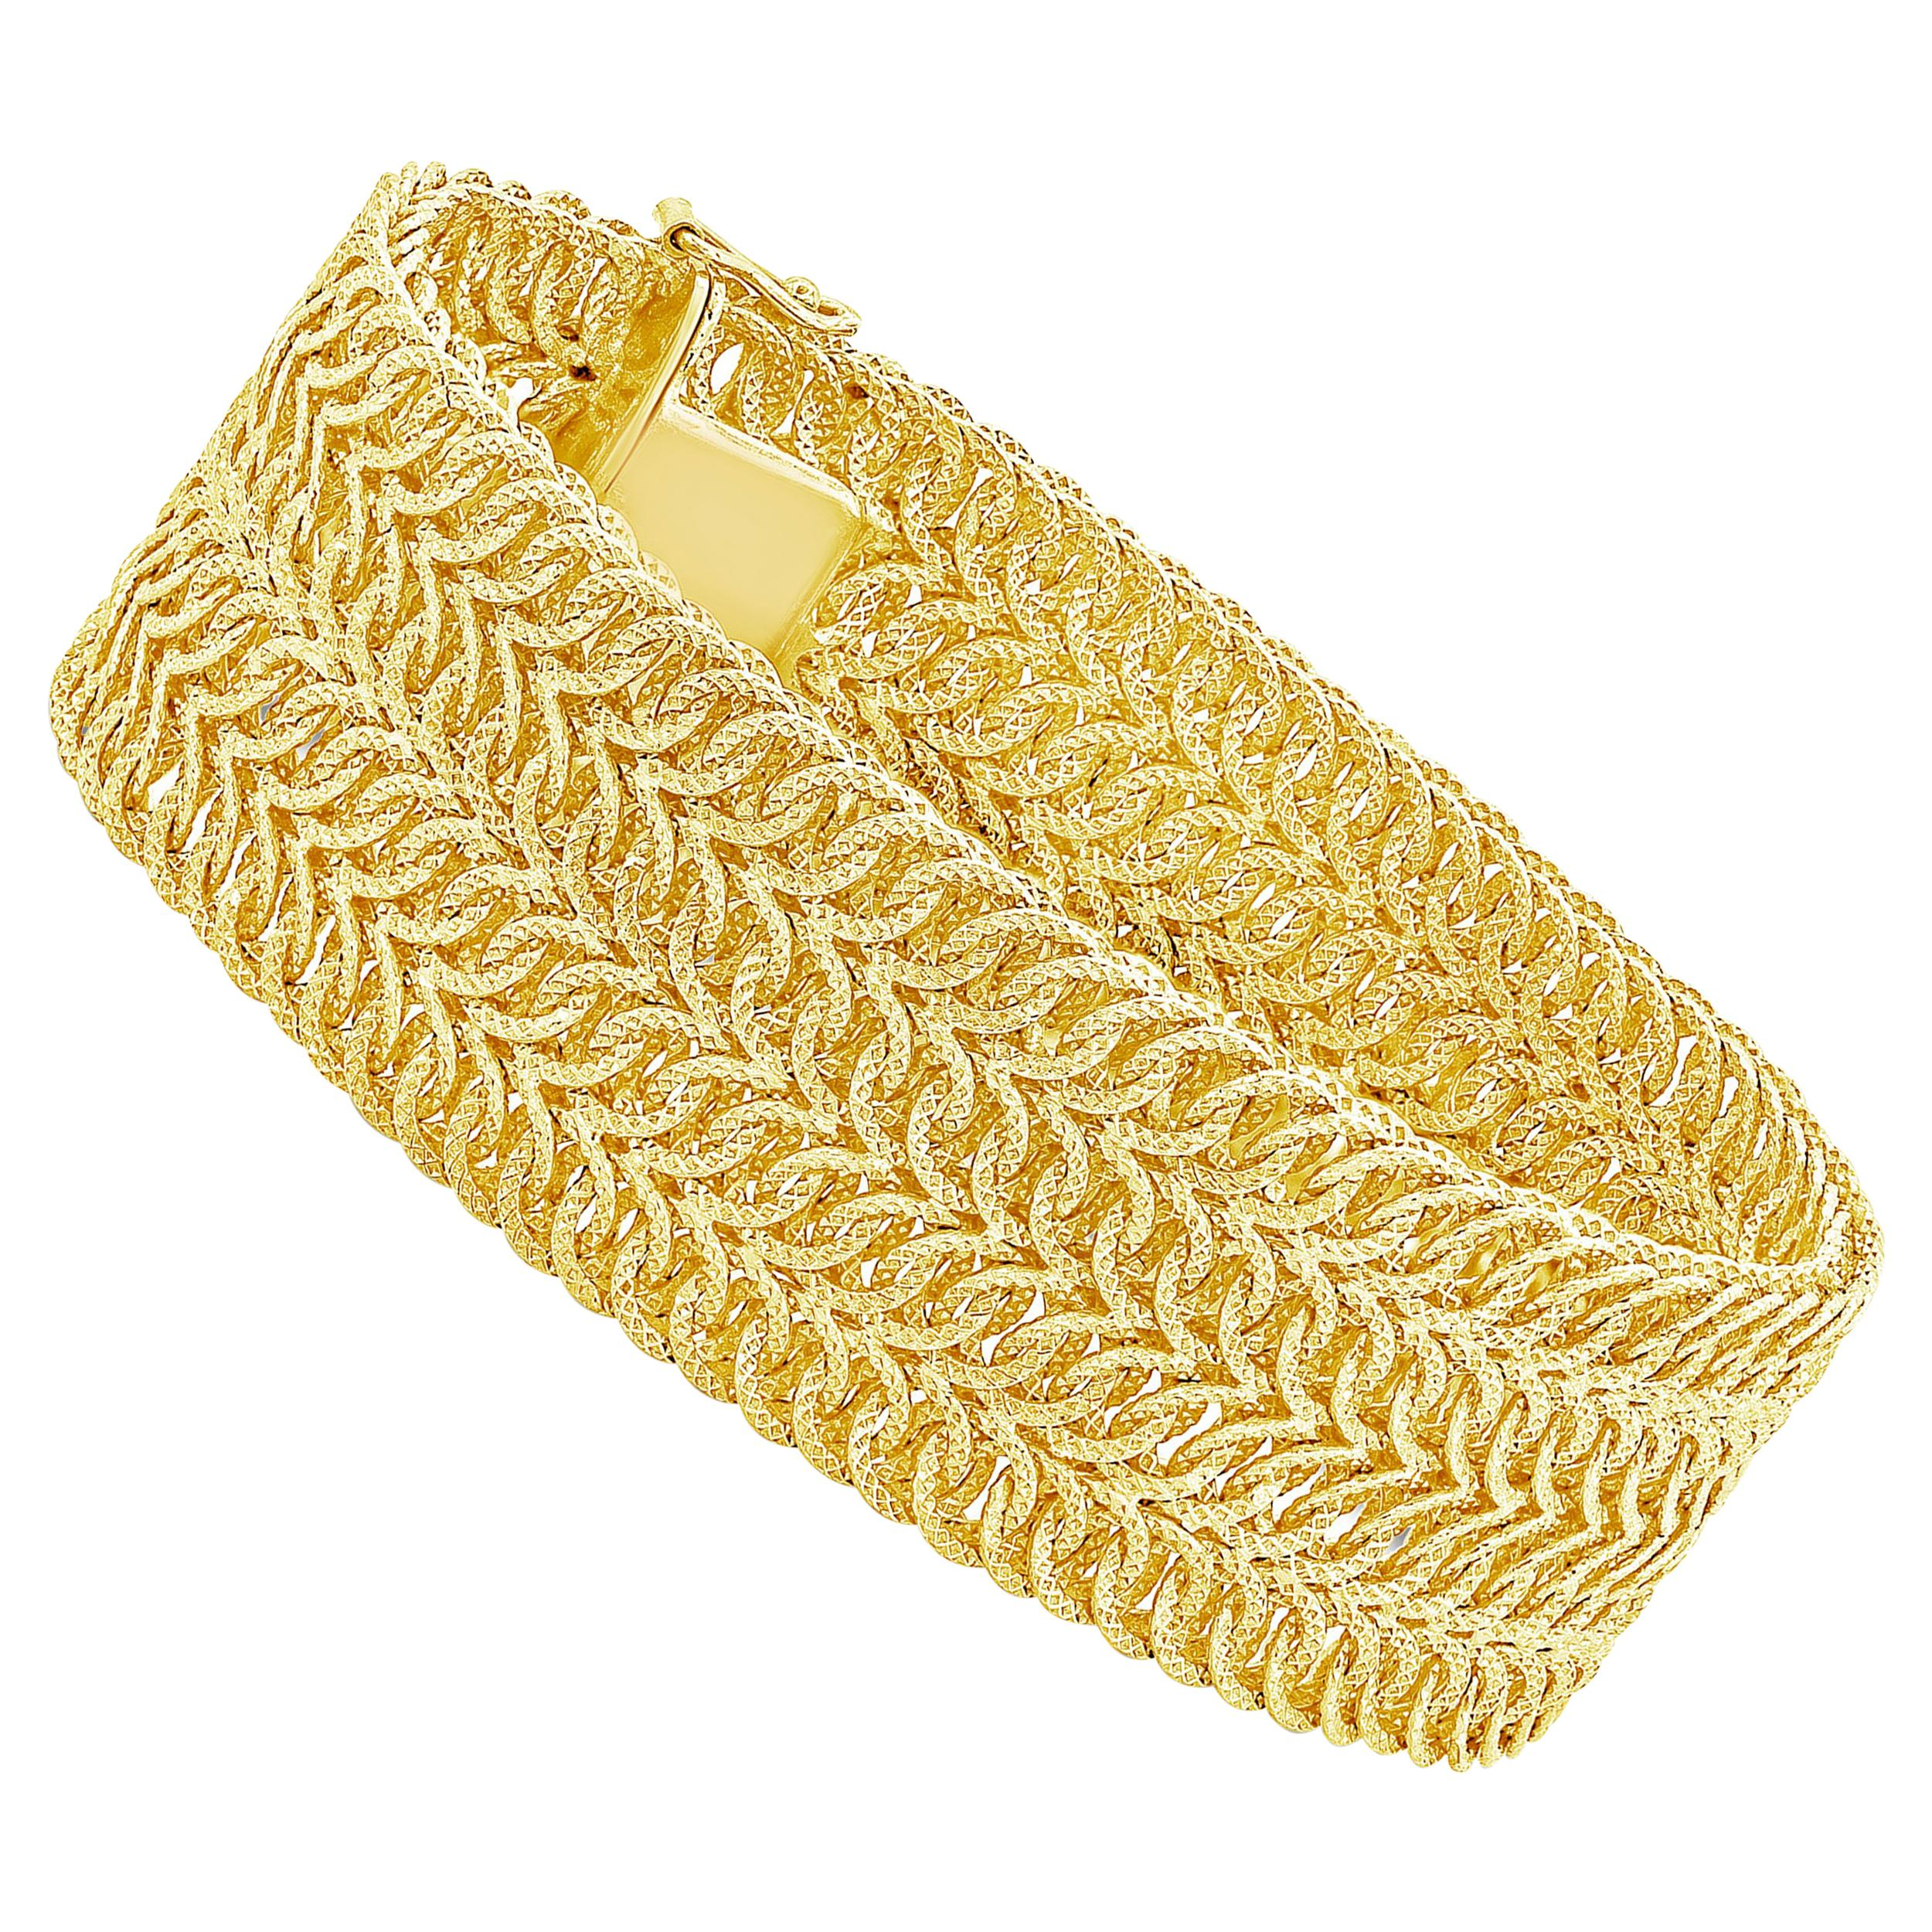 Wide Intertwined 18 Karat Yellow Gold Bracelet